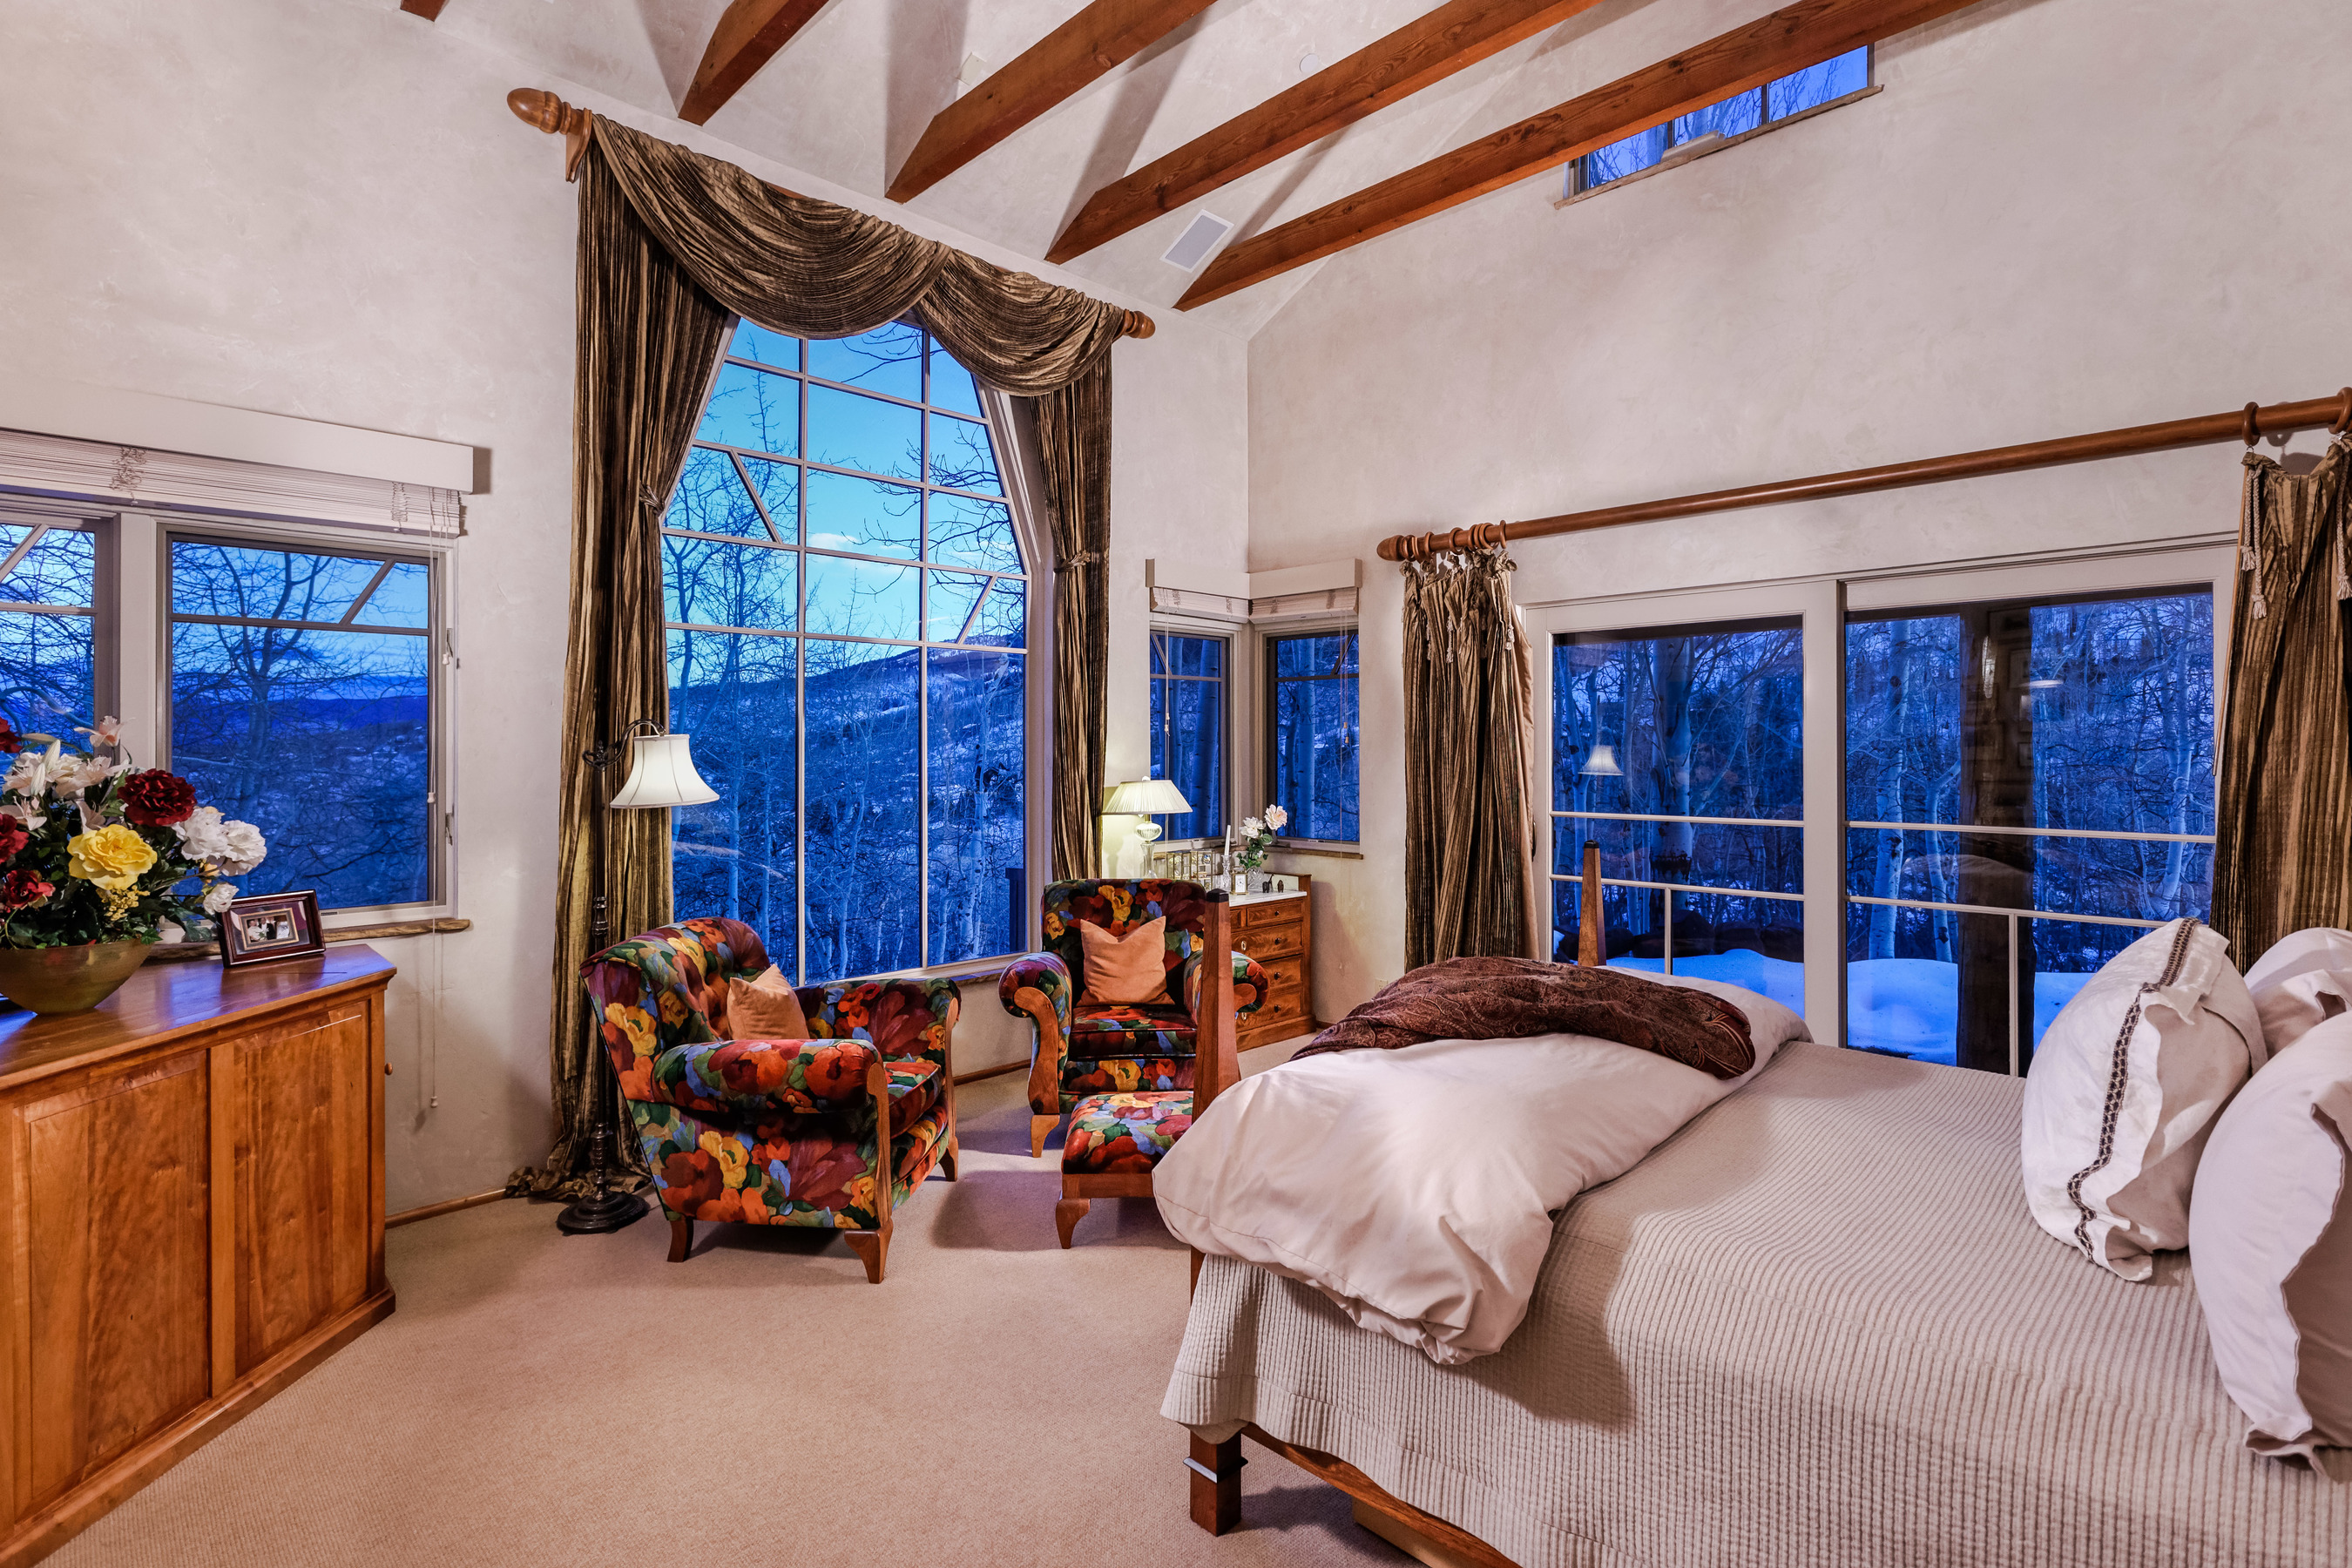 320 Ridge of Wildcat Snowmass Village Photo 29